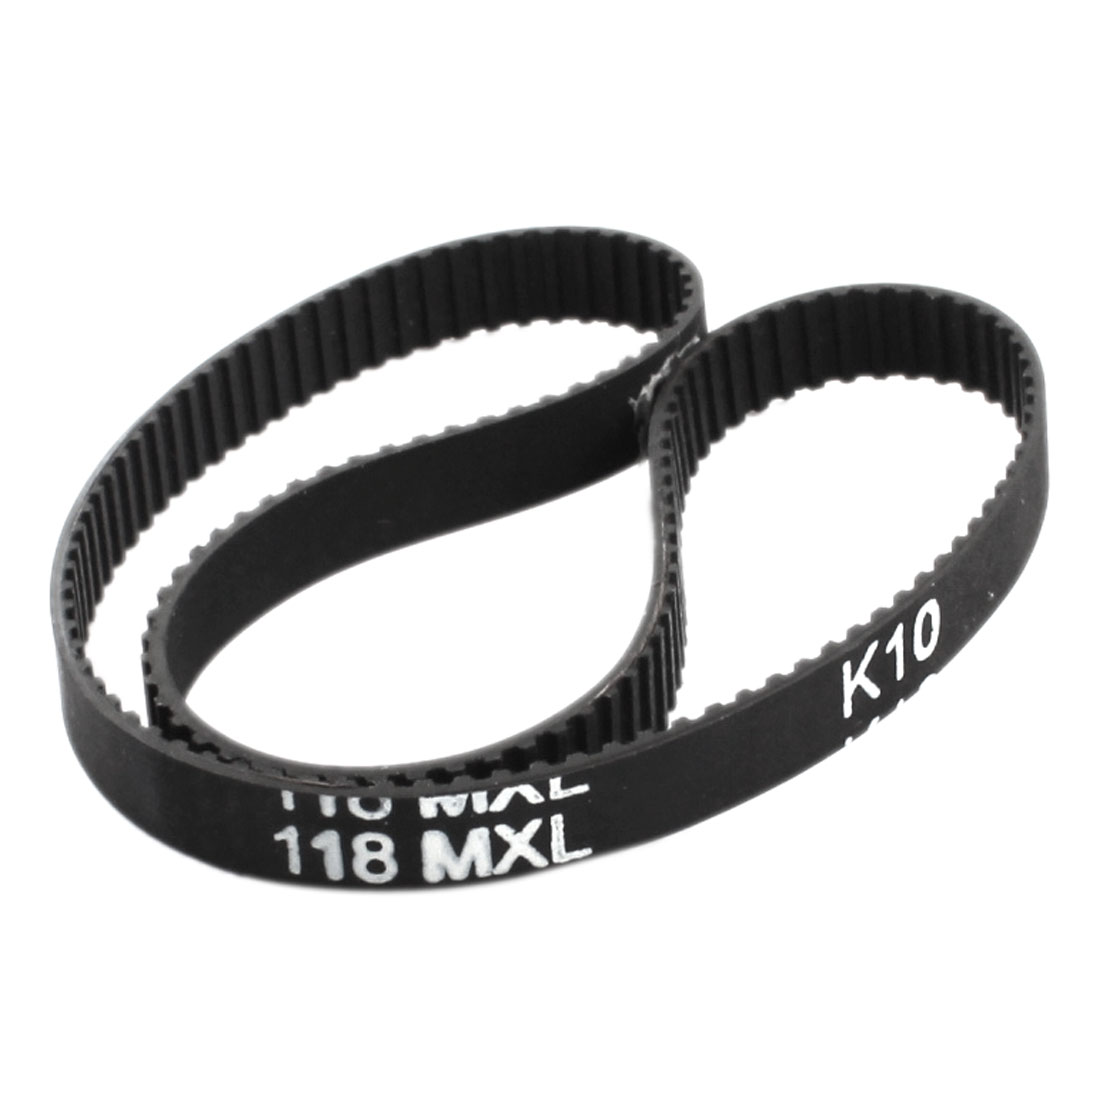 "118MXL025 148-Teeth 1/4"" Wide 2.032mm Pitch Single Side Groove Industrial CNC Machine Synchronous Timing Belt 11.8"""